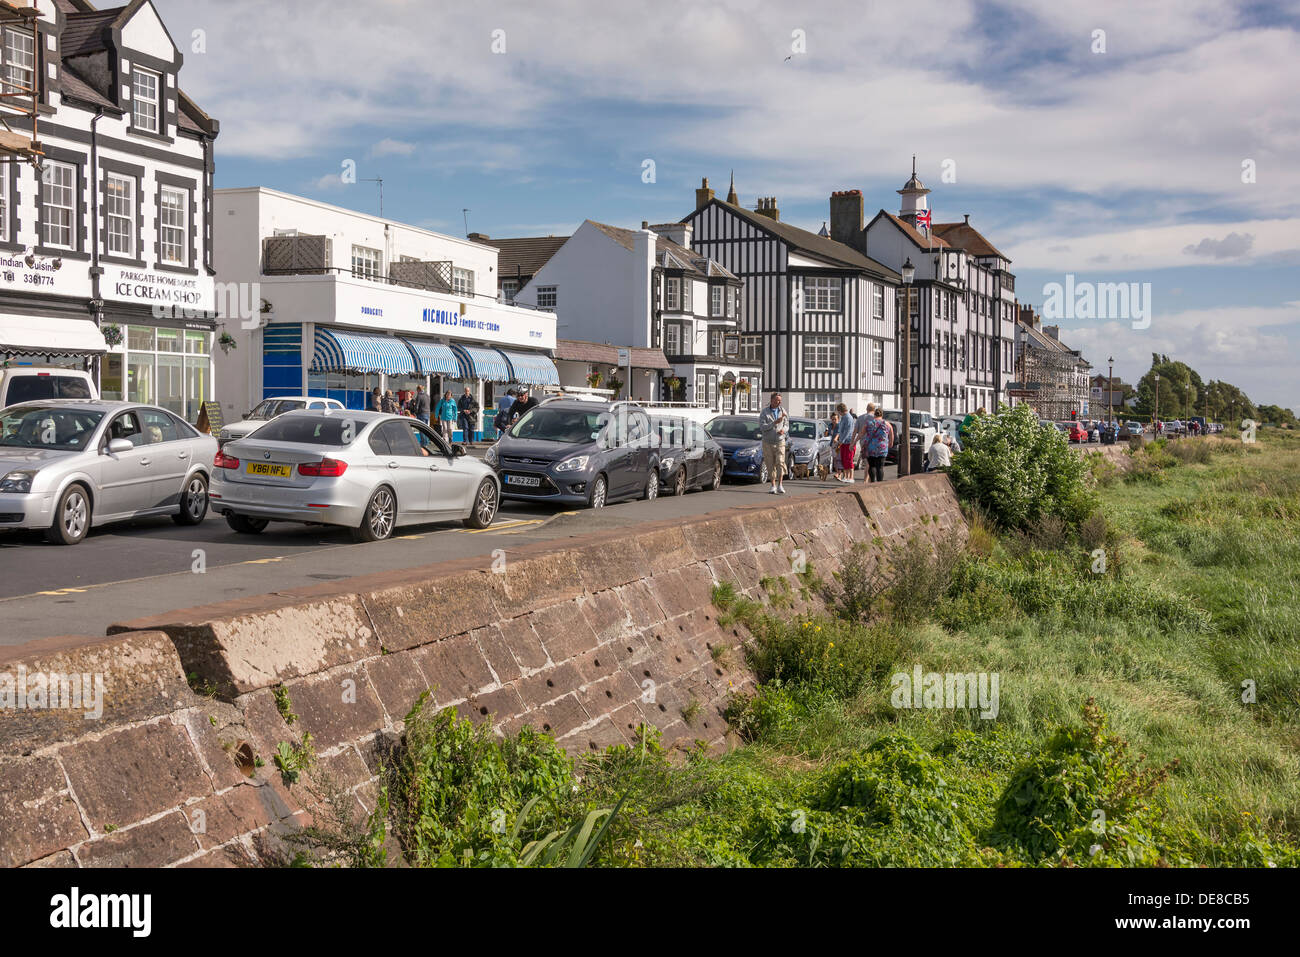 The seafront at Parkgate on the Wirral in Cheshire. Cheshire's only coastal resort. - Stock Image